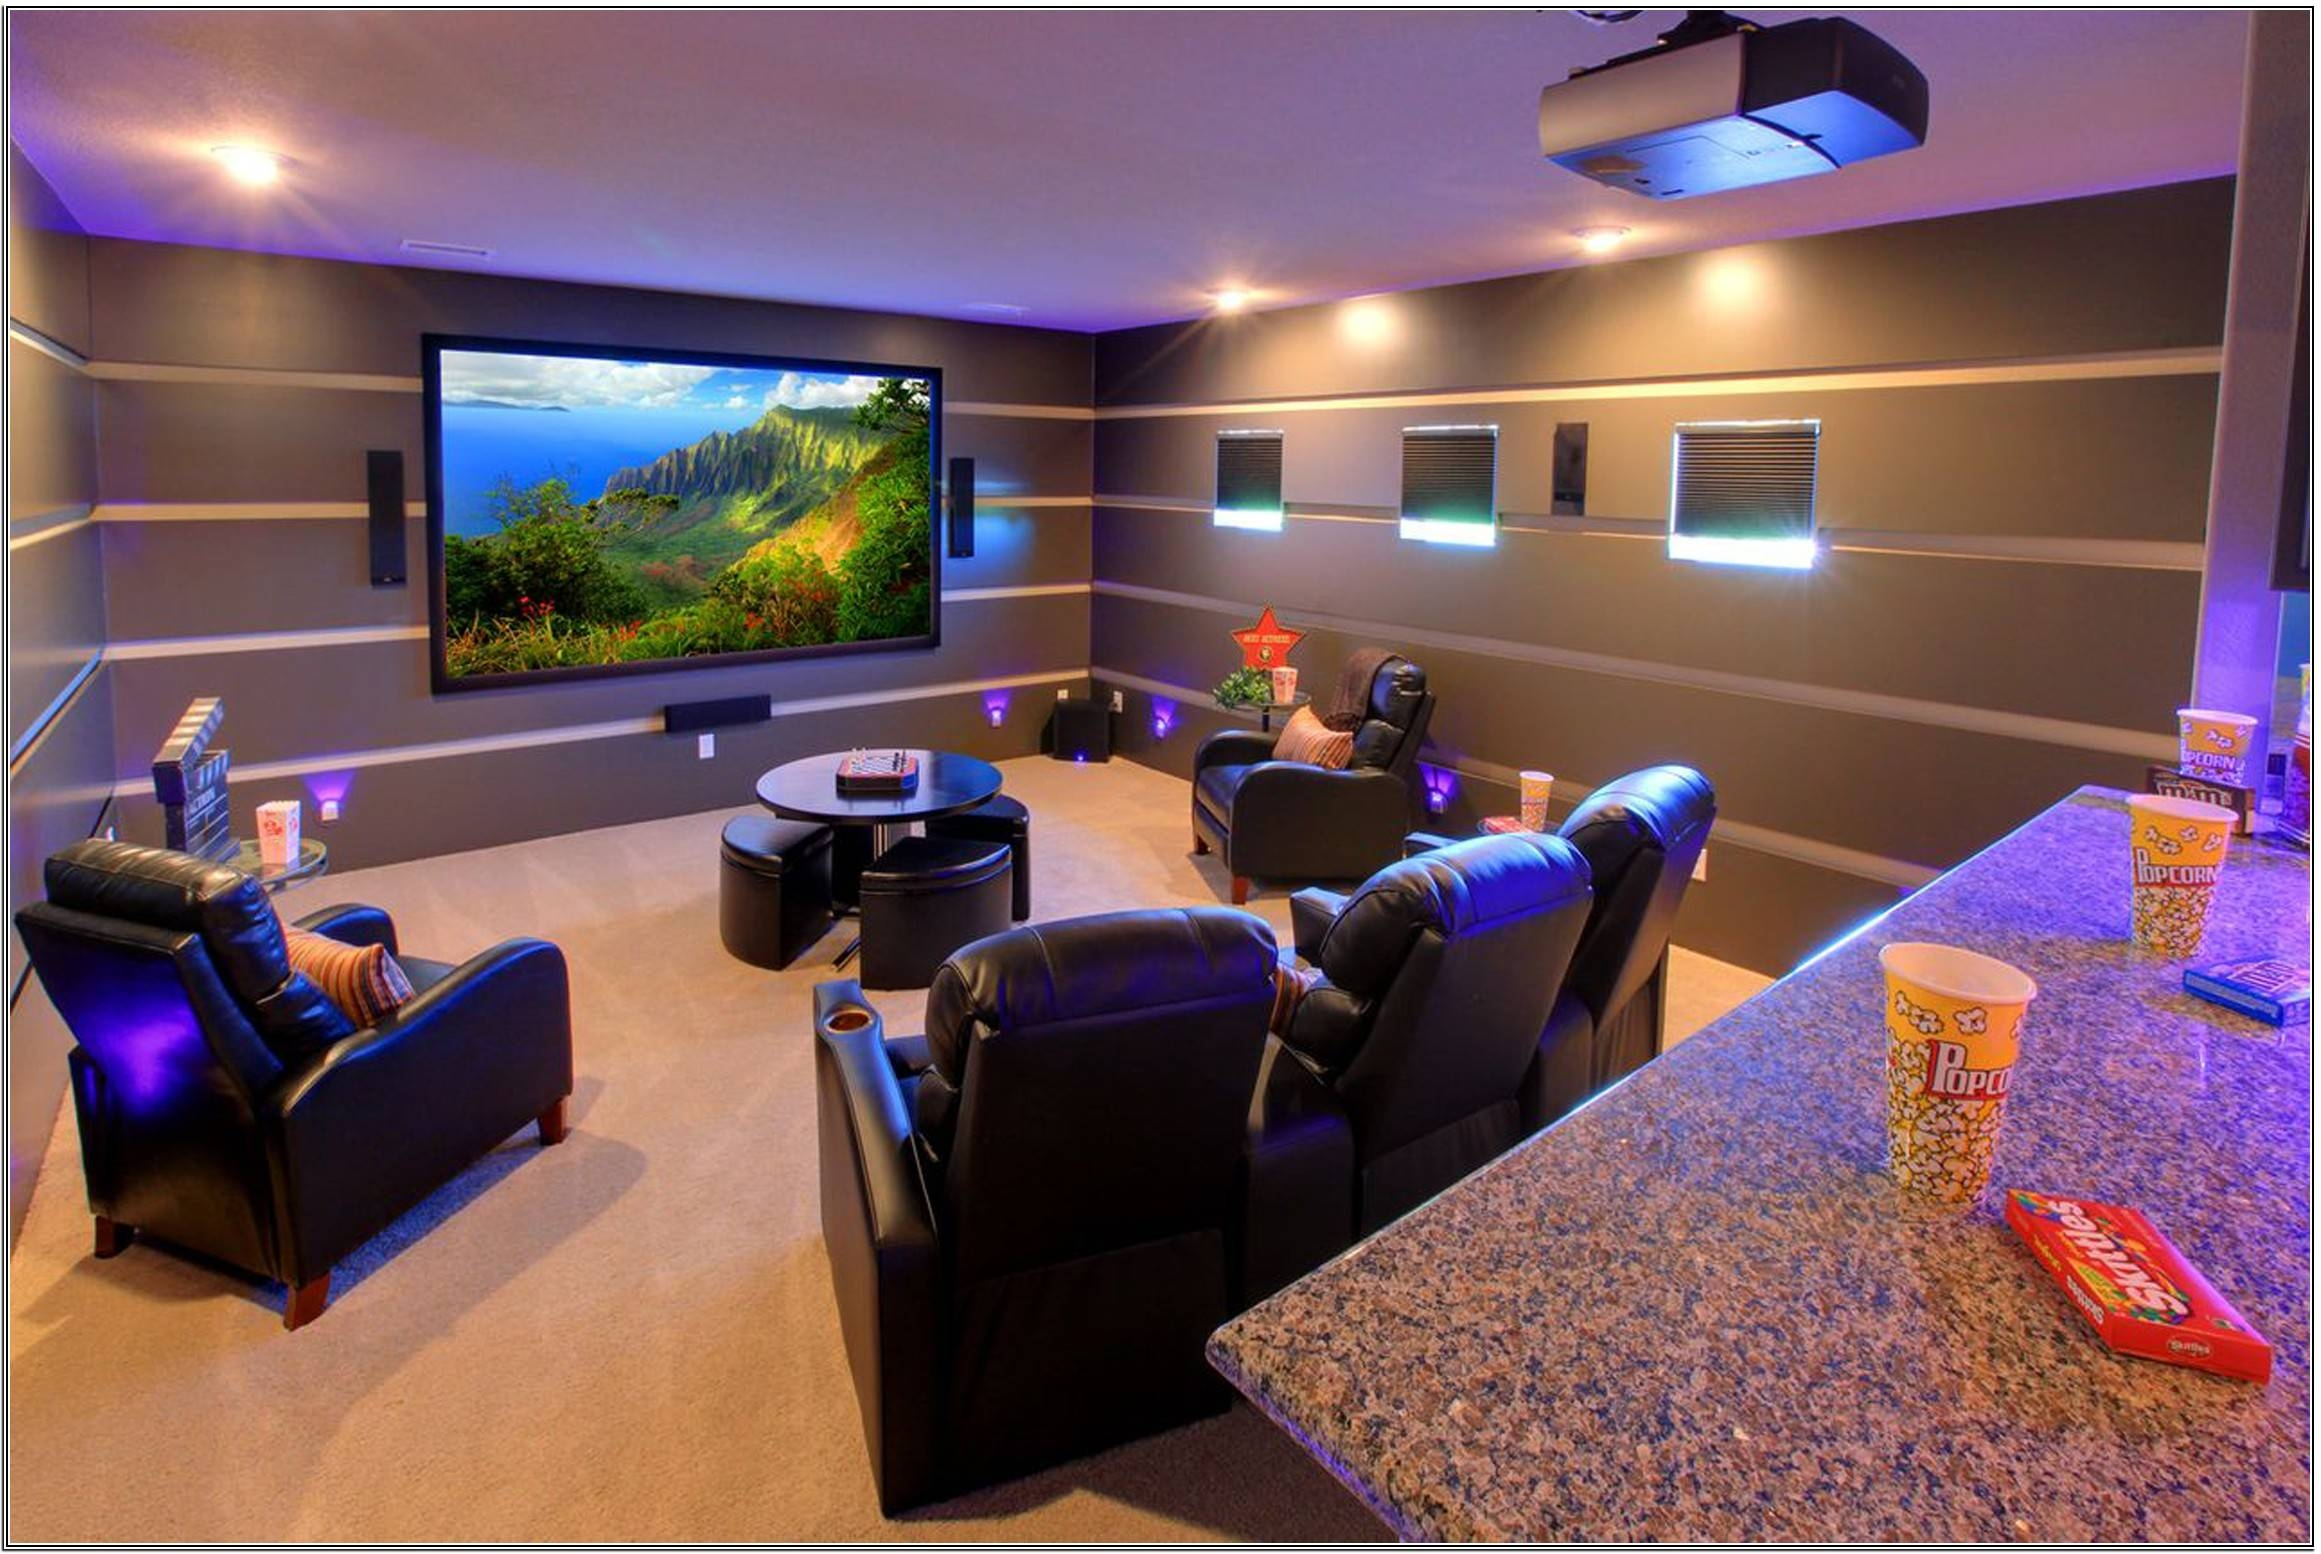 2017 latest theater room sofas living room brandnew portland movie theaters living room in theater room sofas image